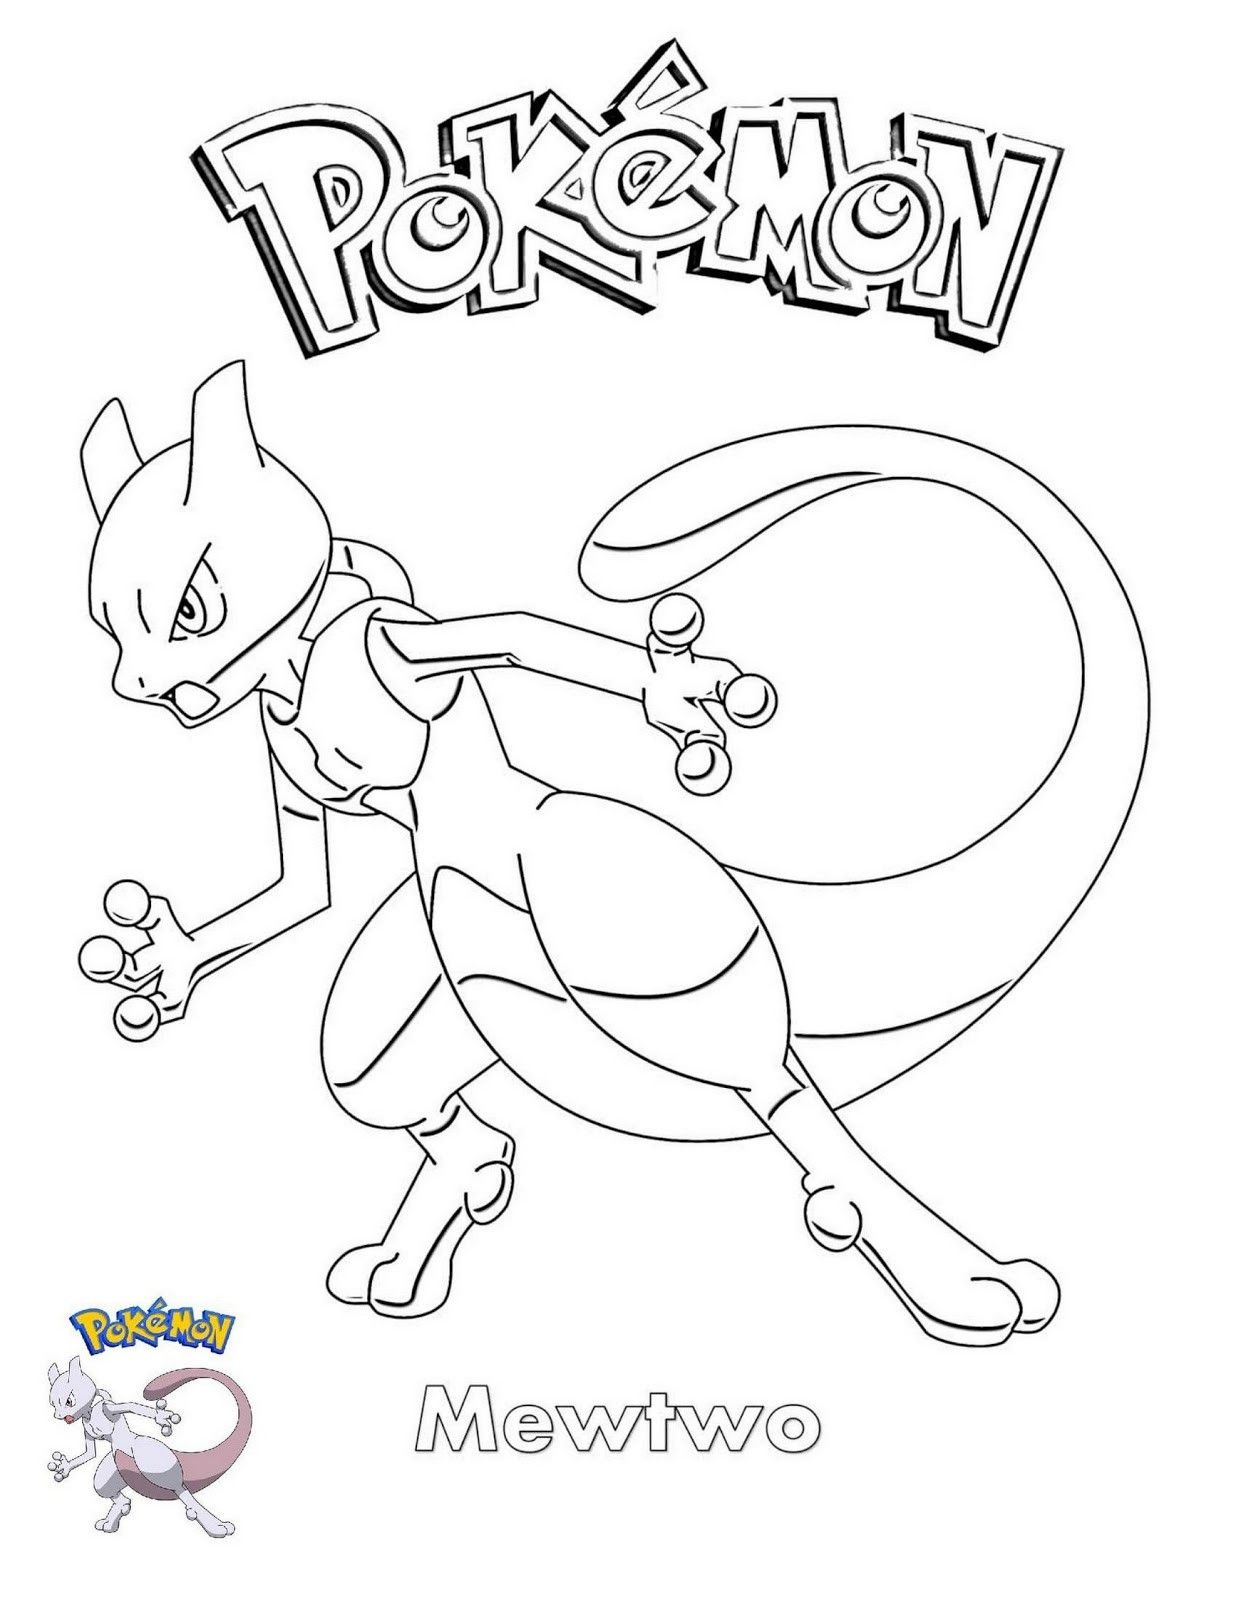 Ultra Beast Pokemon Coloring Page Youngandtae Com Pokemon Coloring Pokemon Coloring Pages Puppy Coloring Pages